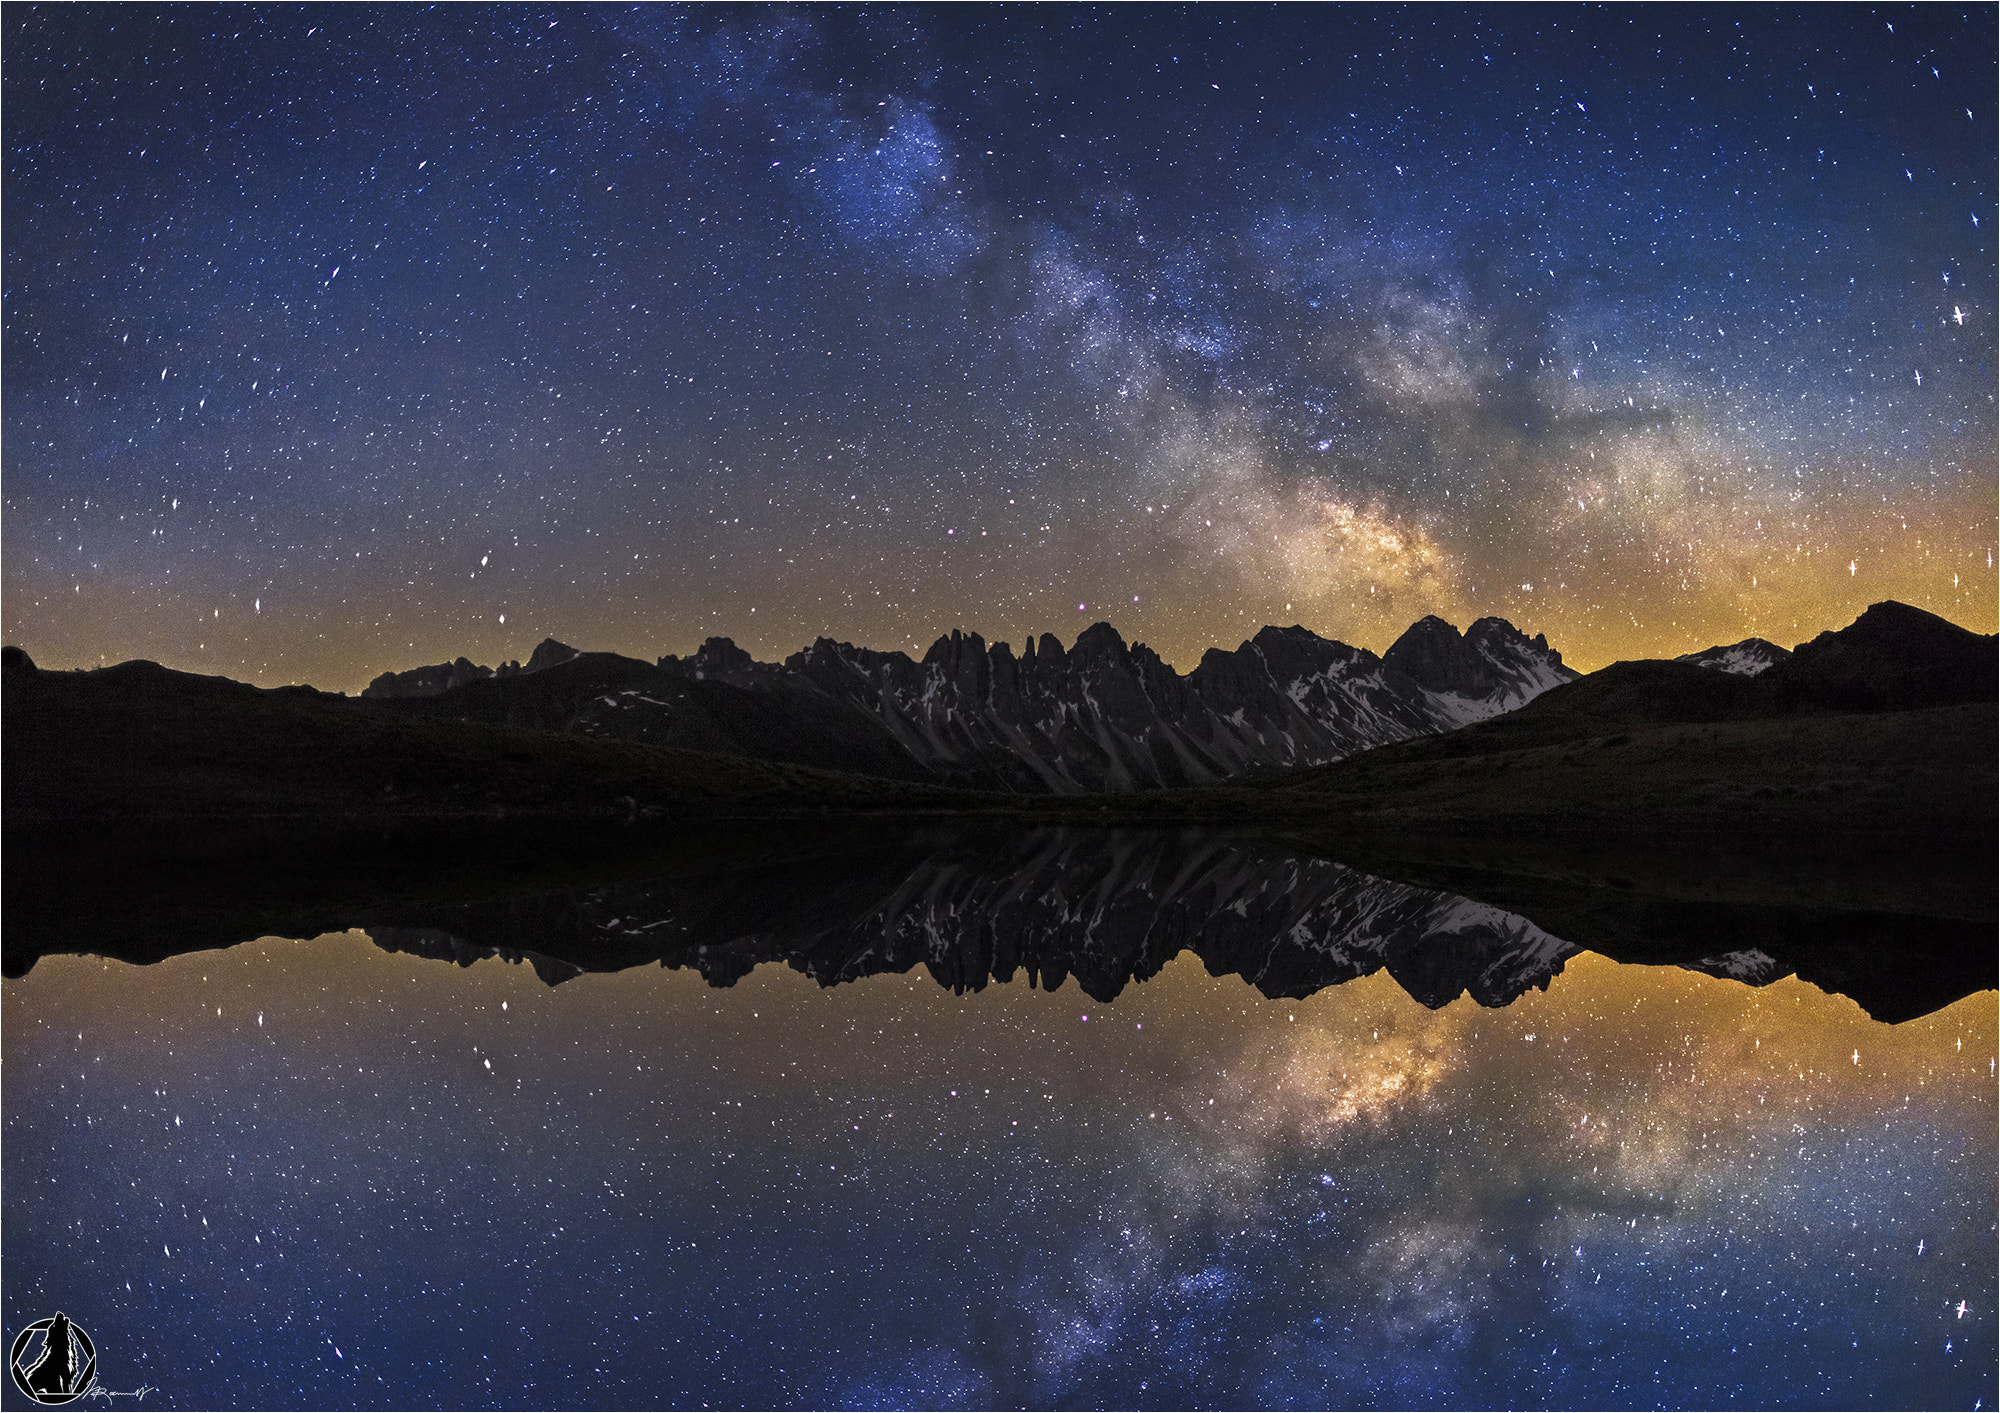 Photograph Lake Milky Way by Nicholas Roemmelt on 500px